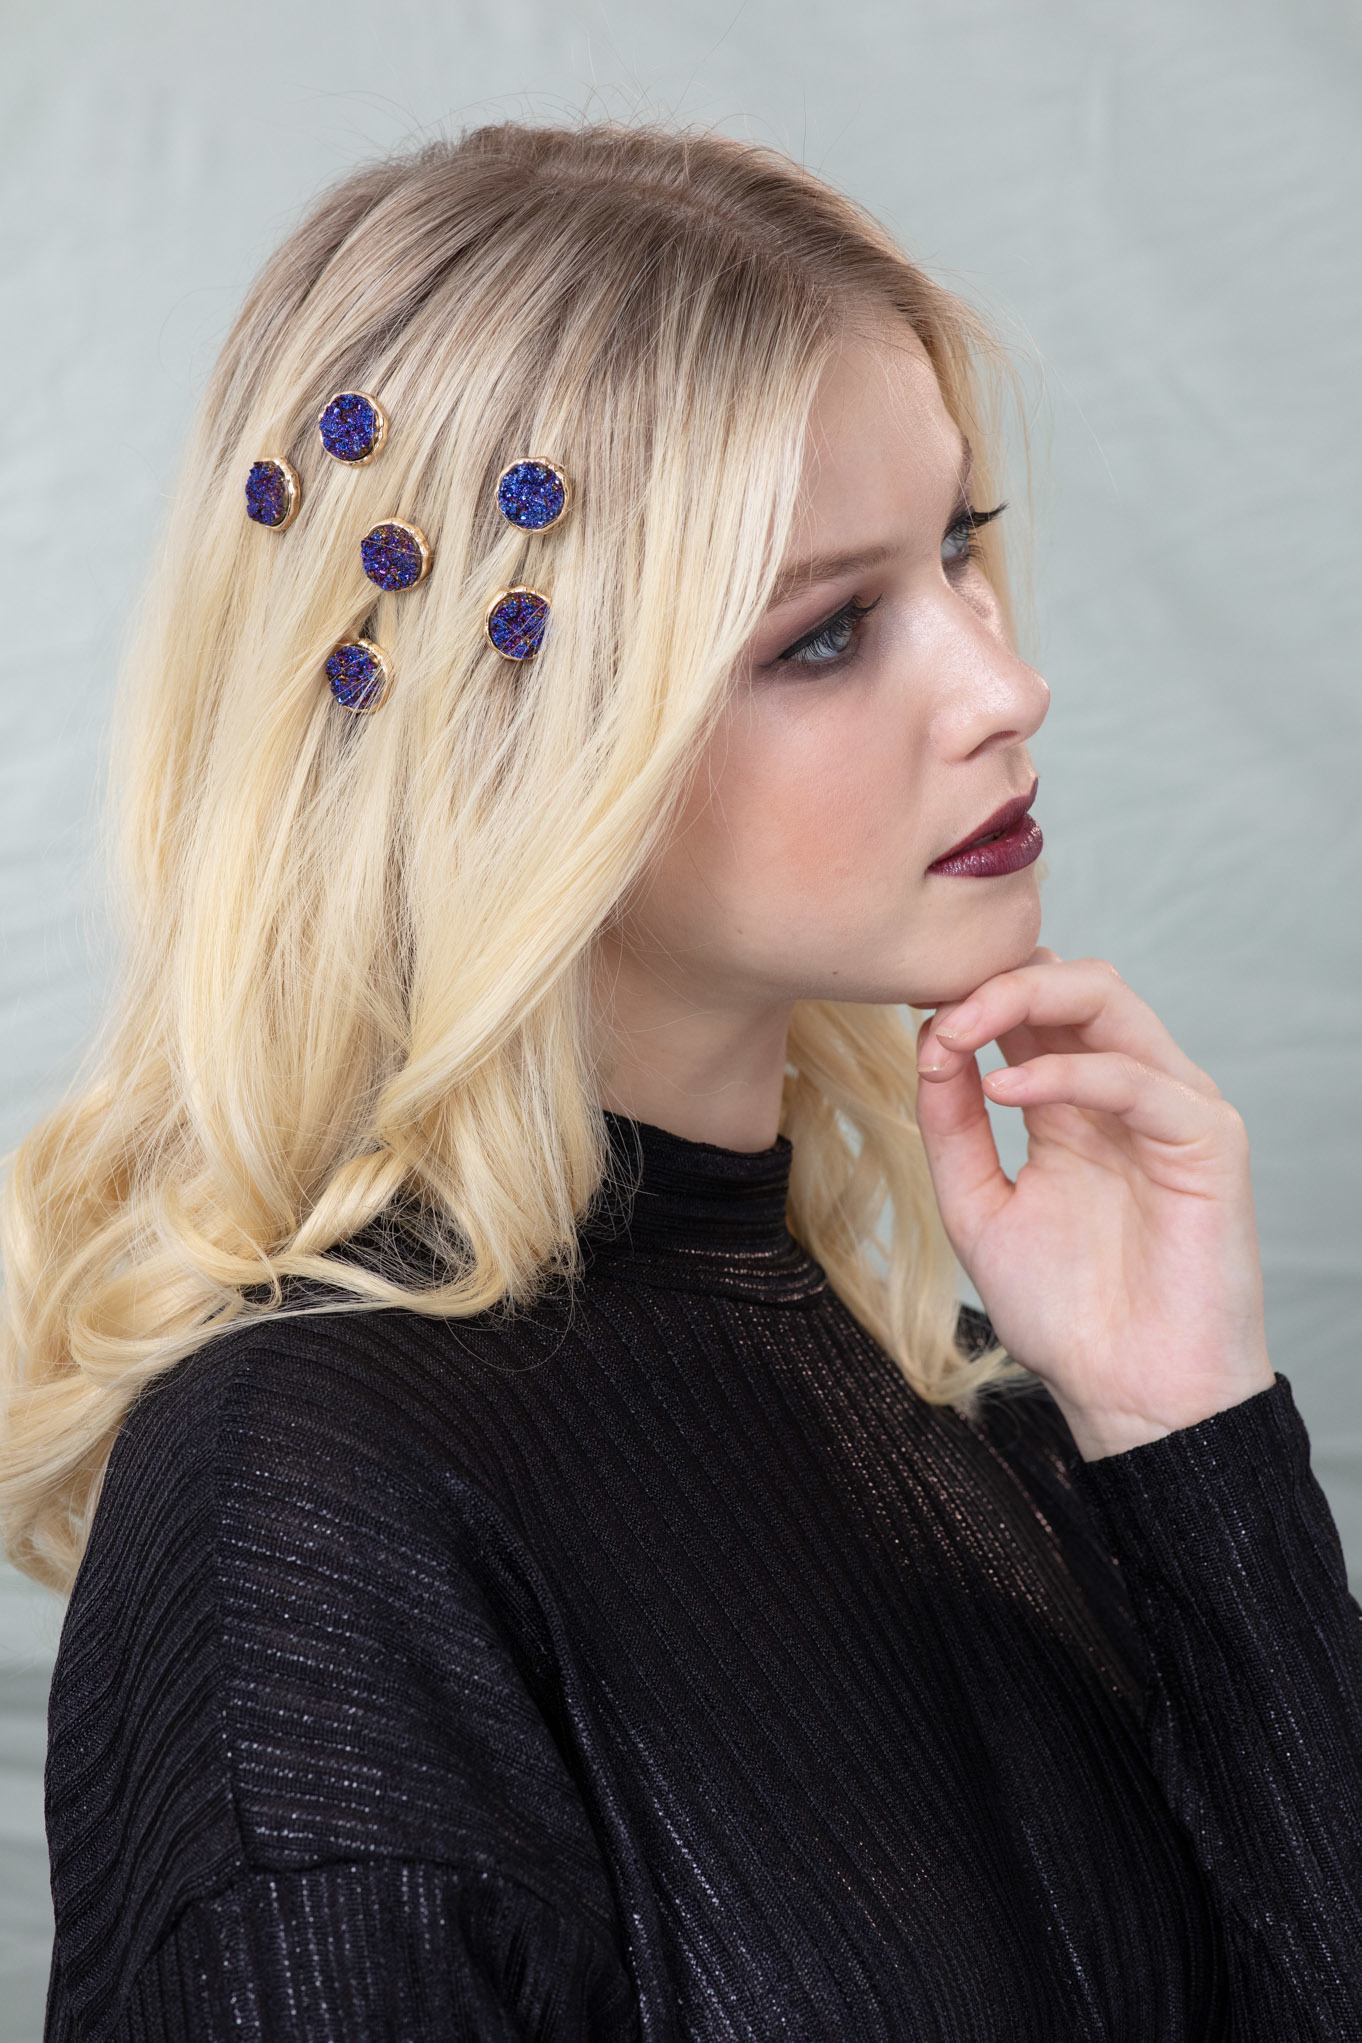 Woman with golden blonde hair styled into loose waves and decorated with Aaron Carlo volcanic hair accessories, wearing a blue top with dark makeup in a studio setting